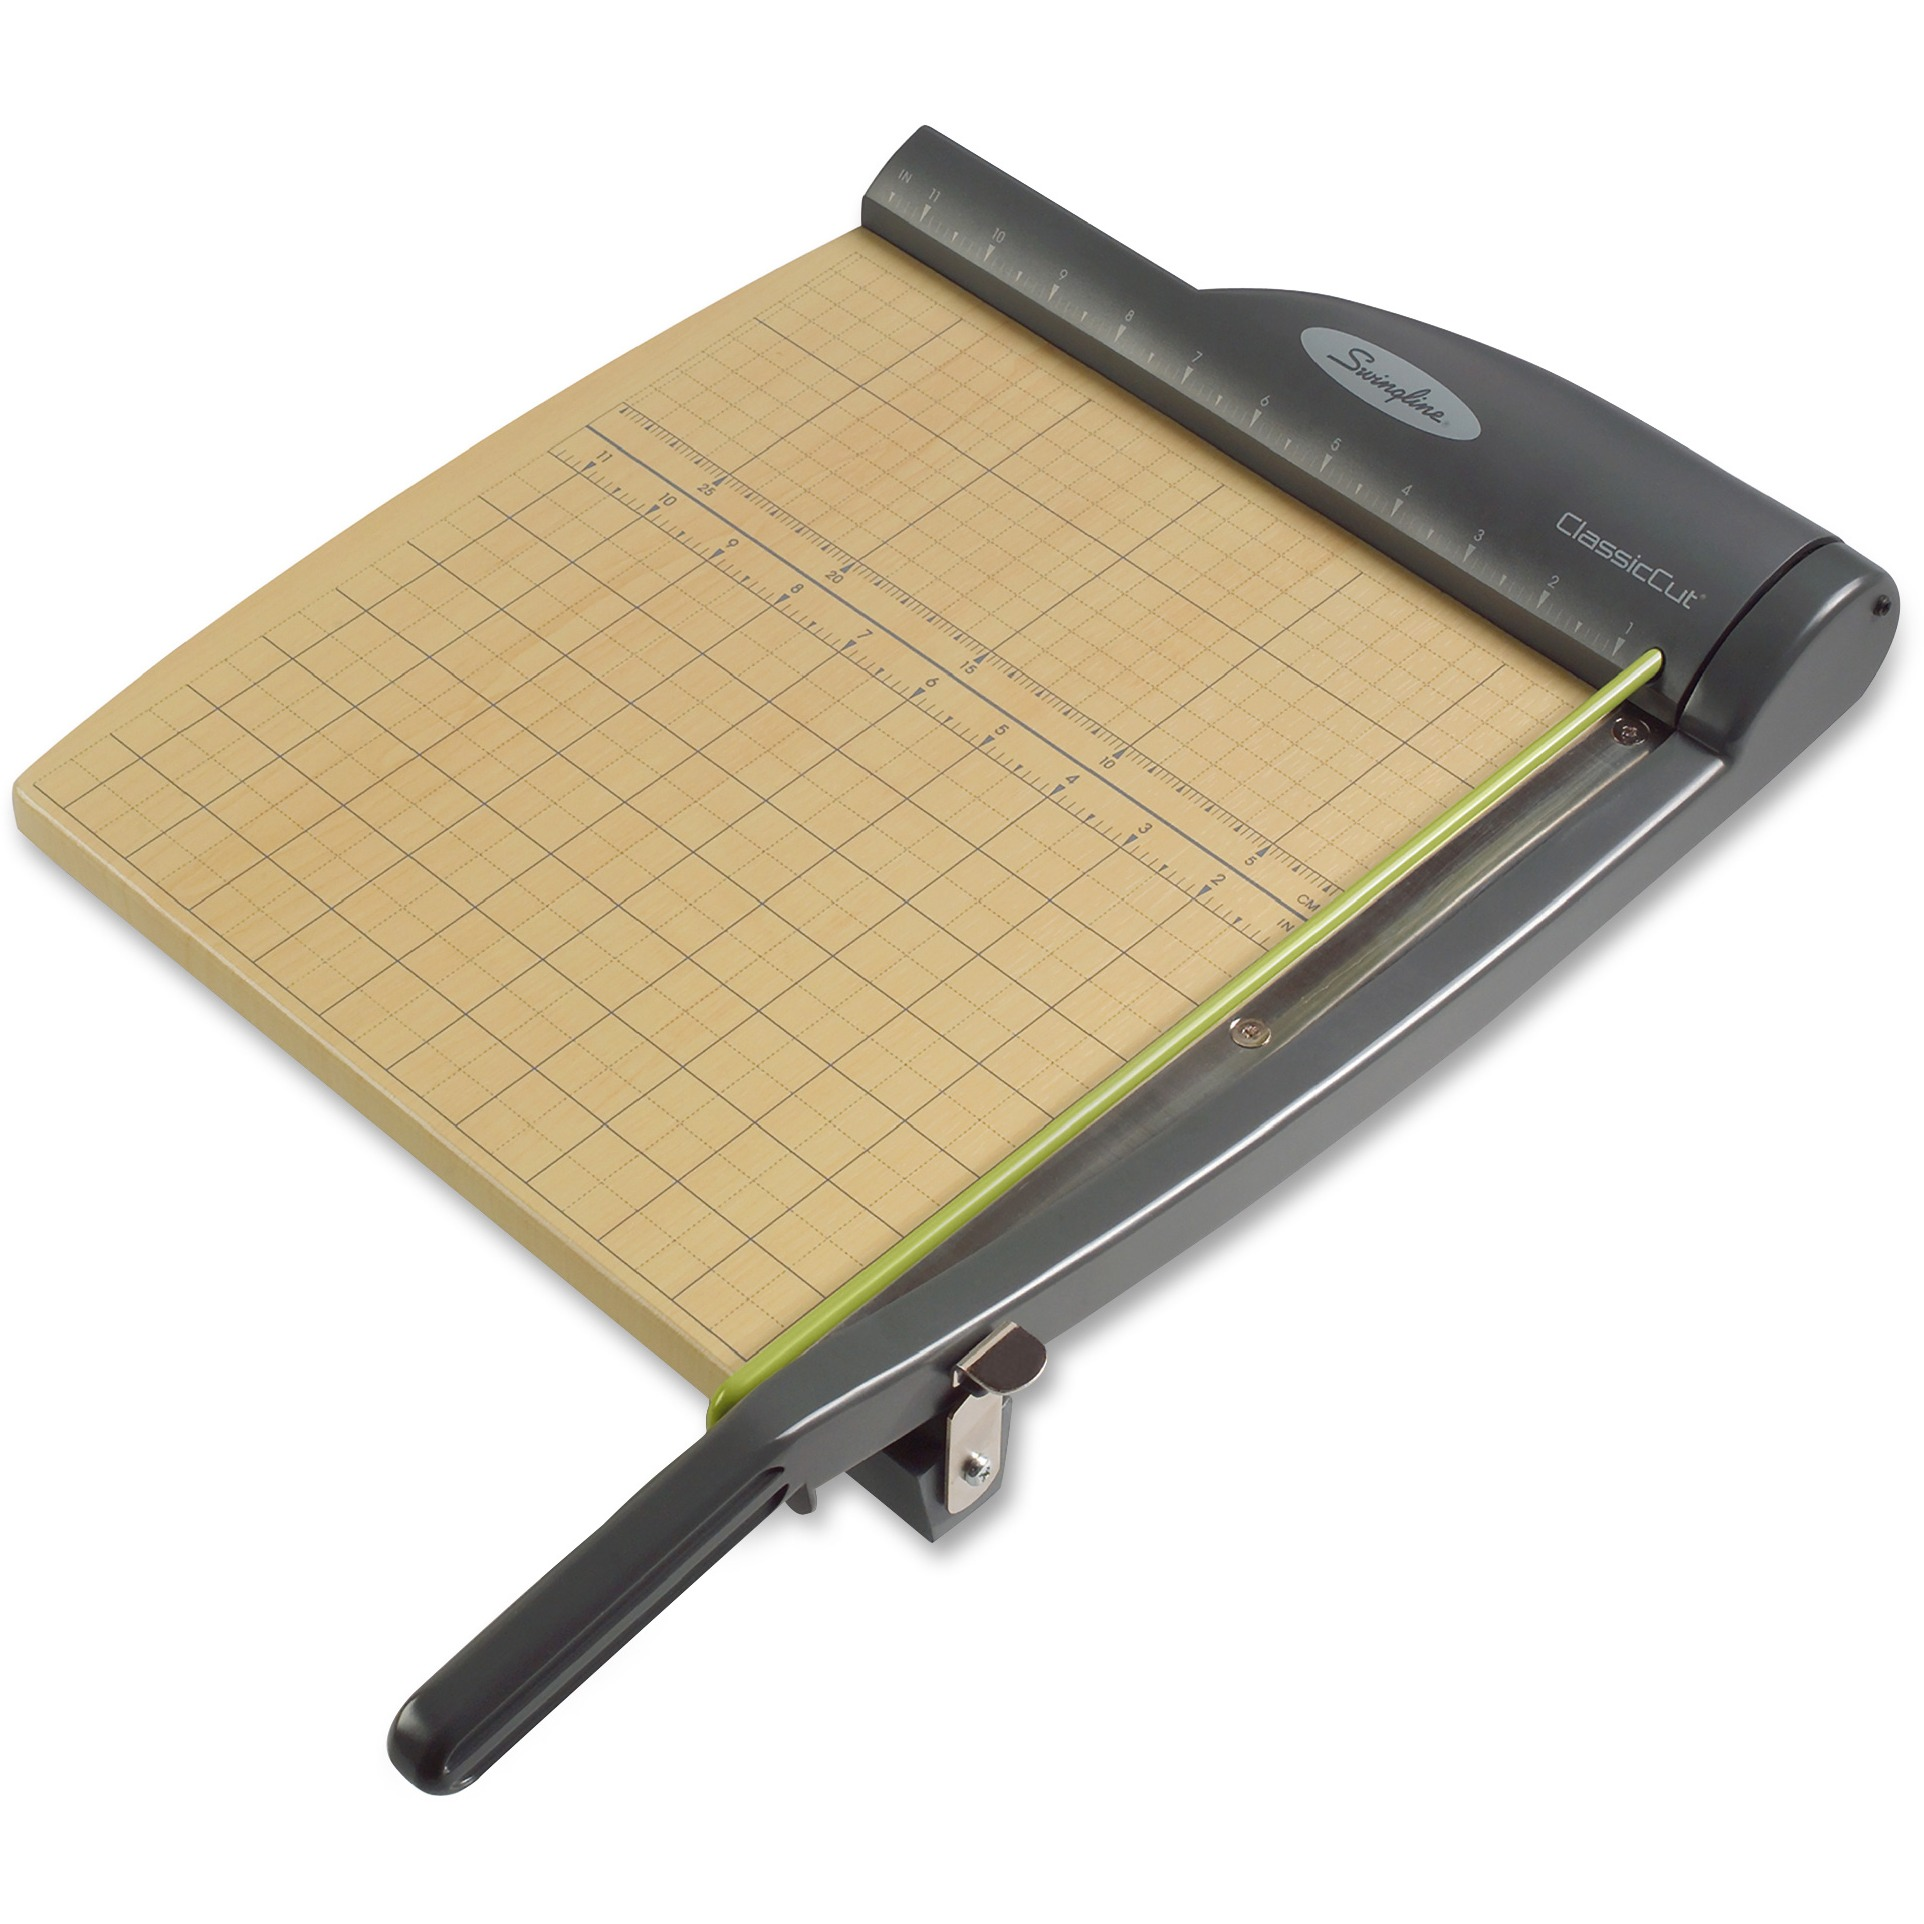 "Swingline ClassicCut Pro Guillotine Trimmer, 12"" Cut Length, 15 Sheet Capacity"